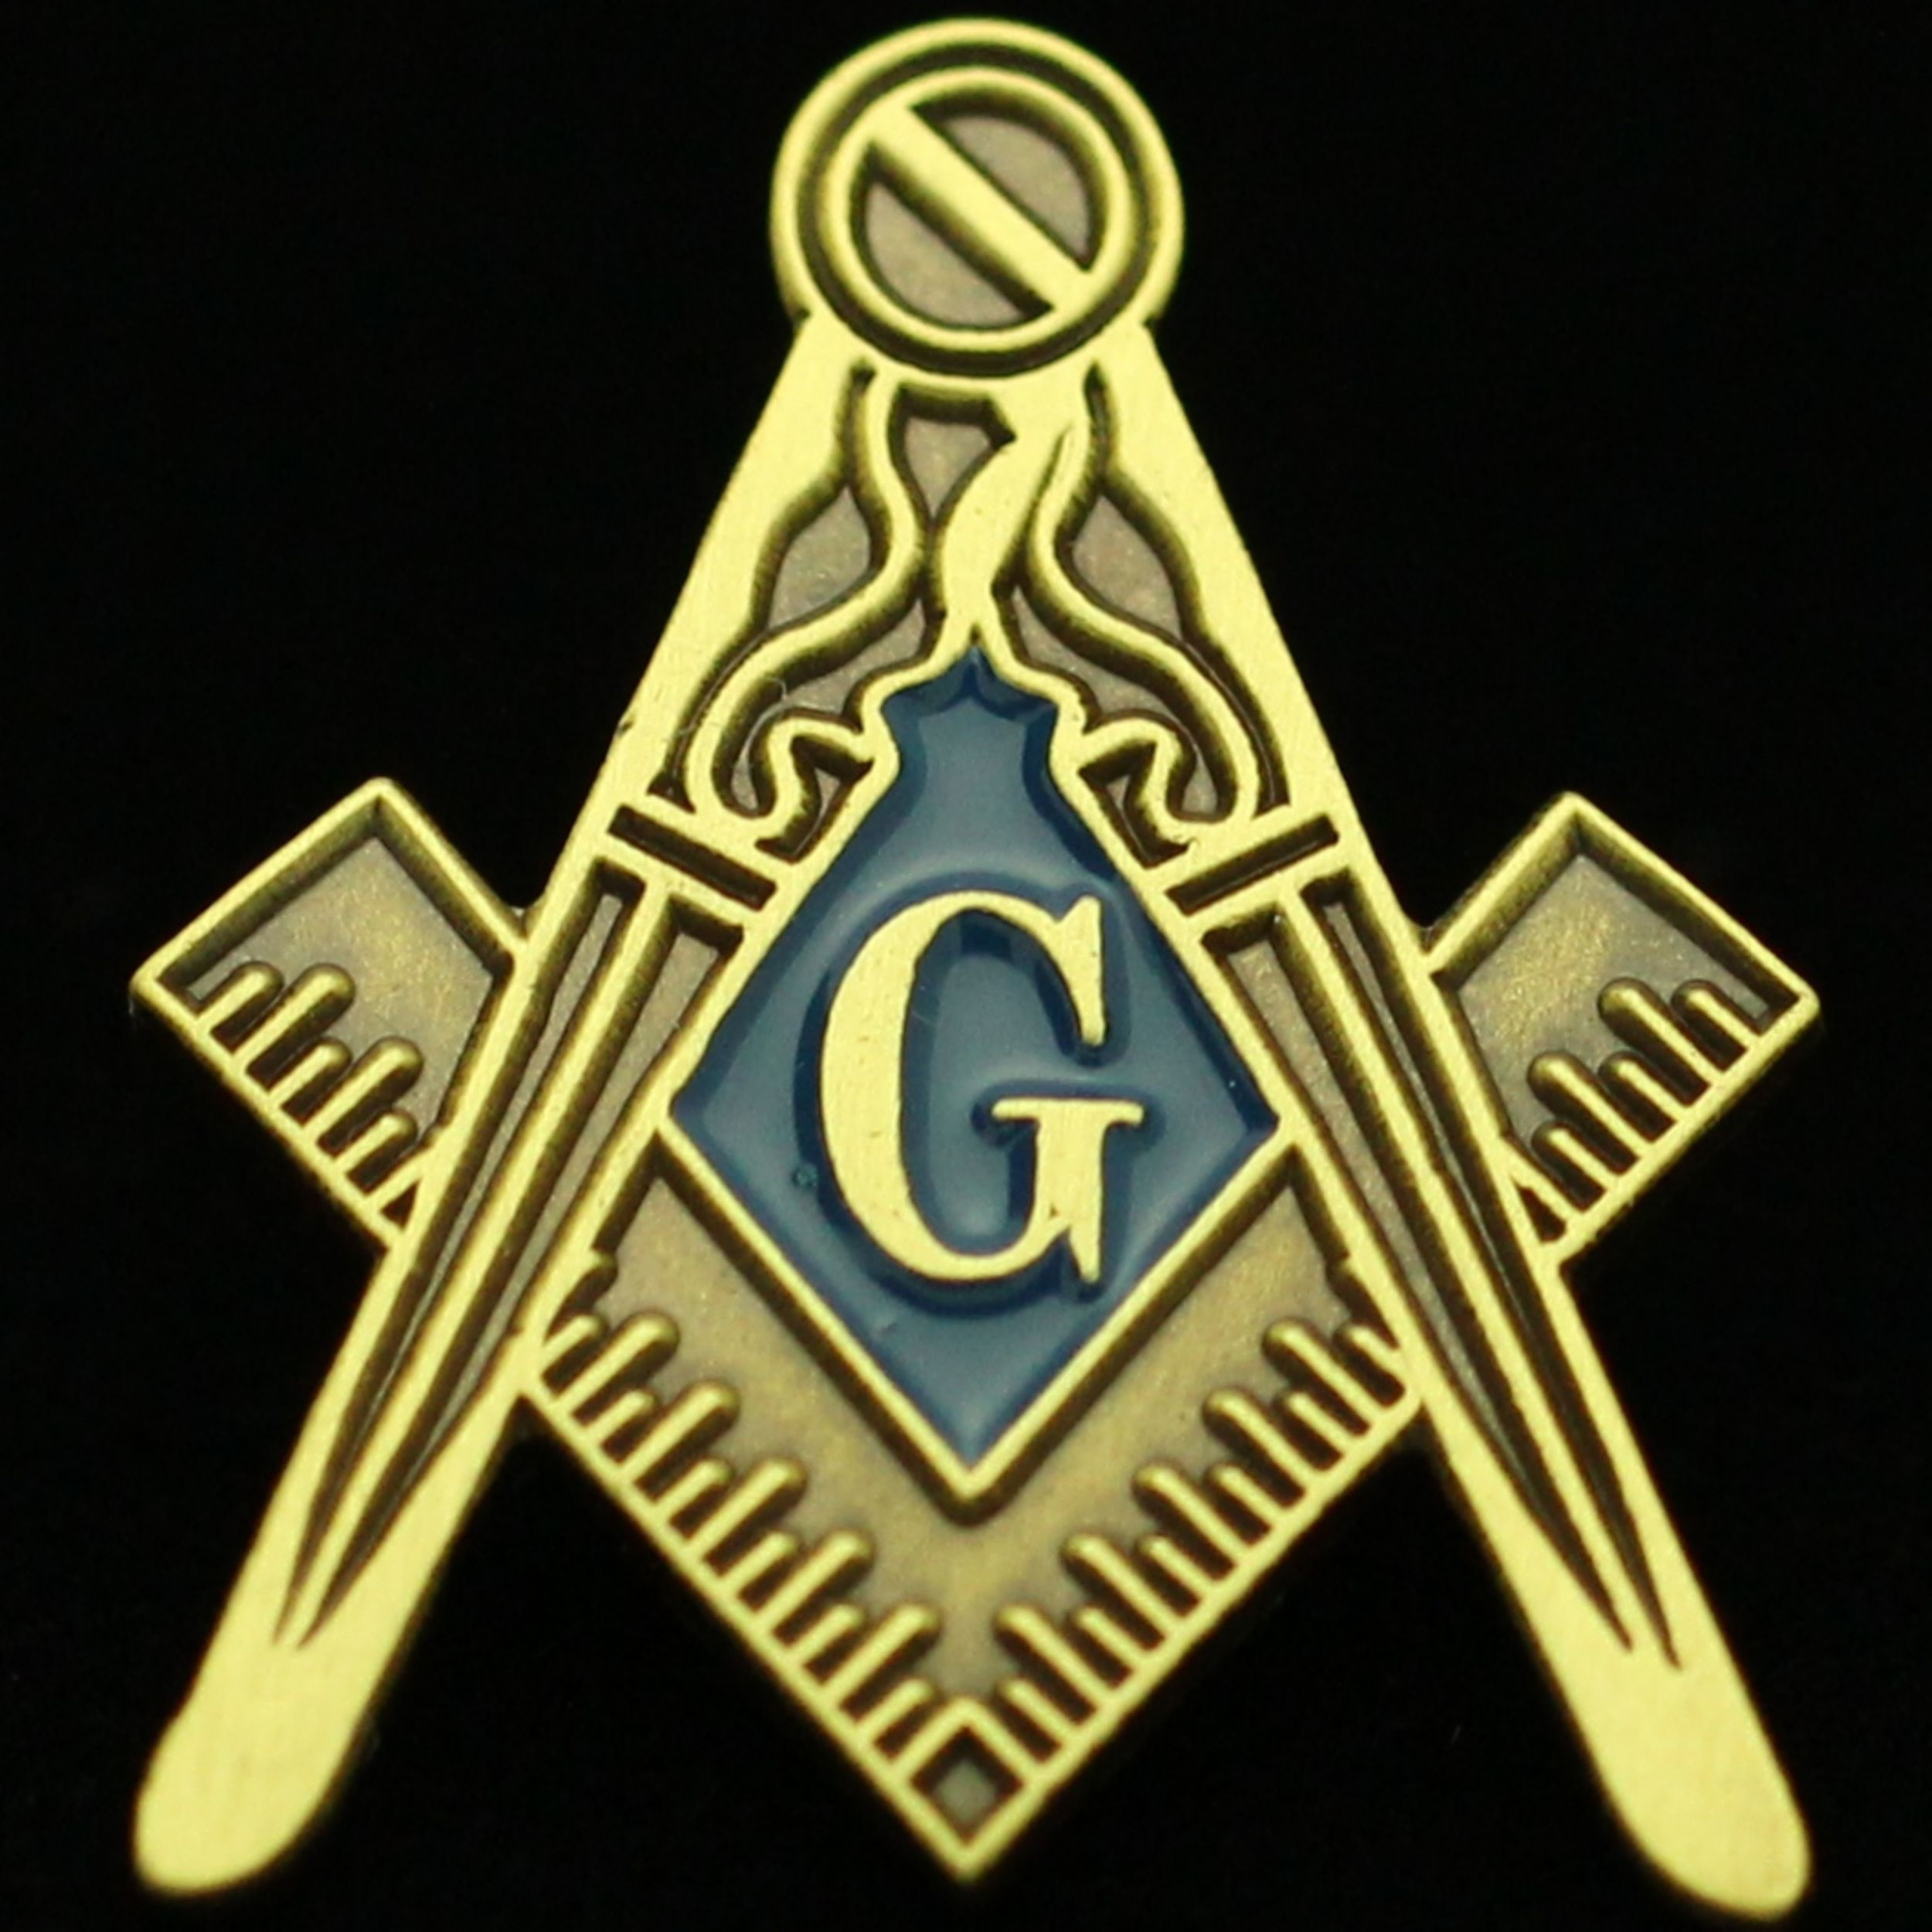 Scottish rite create a blog post for your masonic lodge this area is for any masonic lodge that does not reside in the central masonic temple share lodge news events and photographs etc buycottarizona Gallery